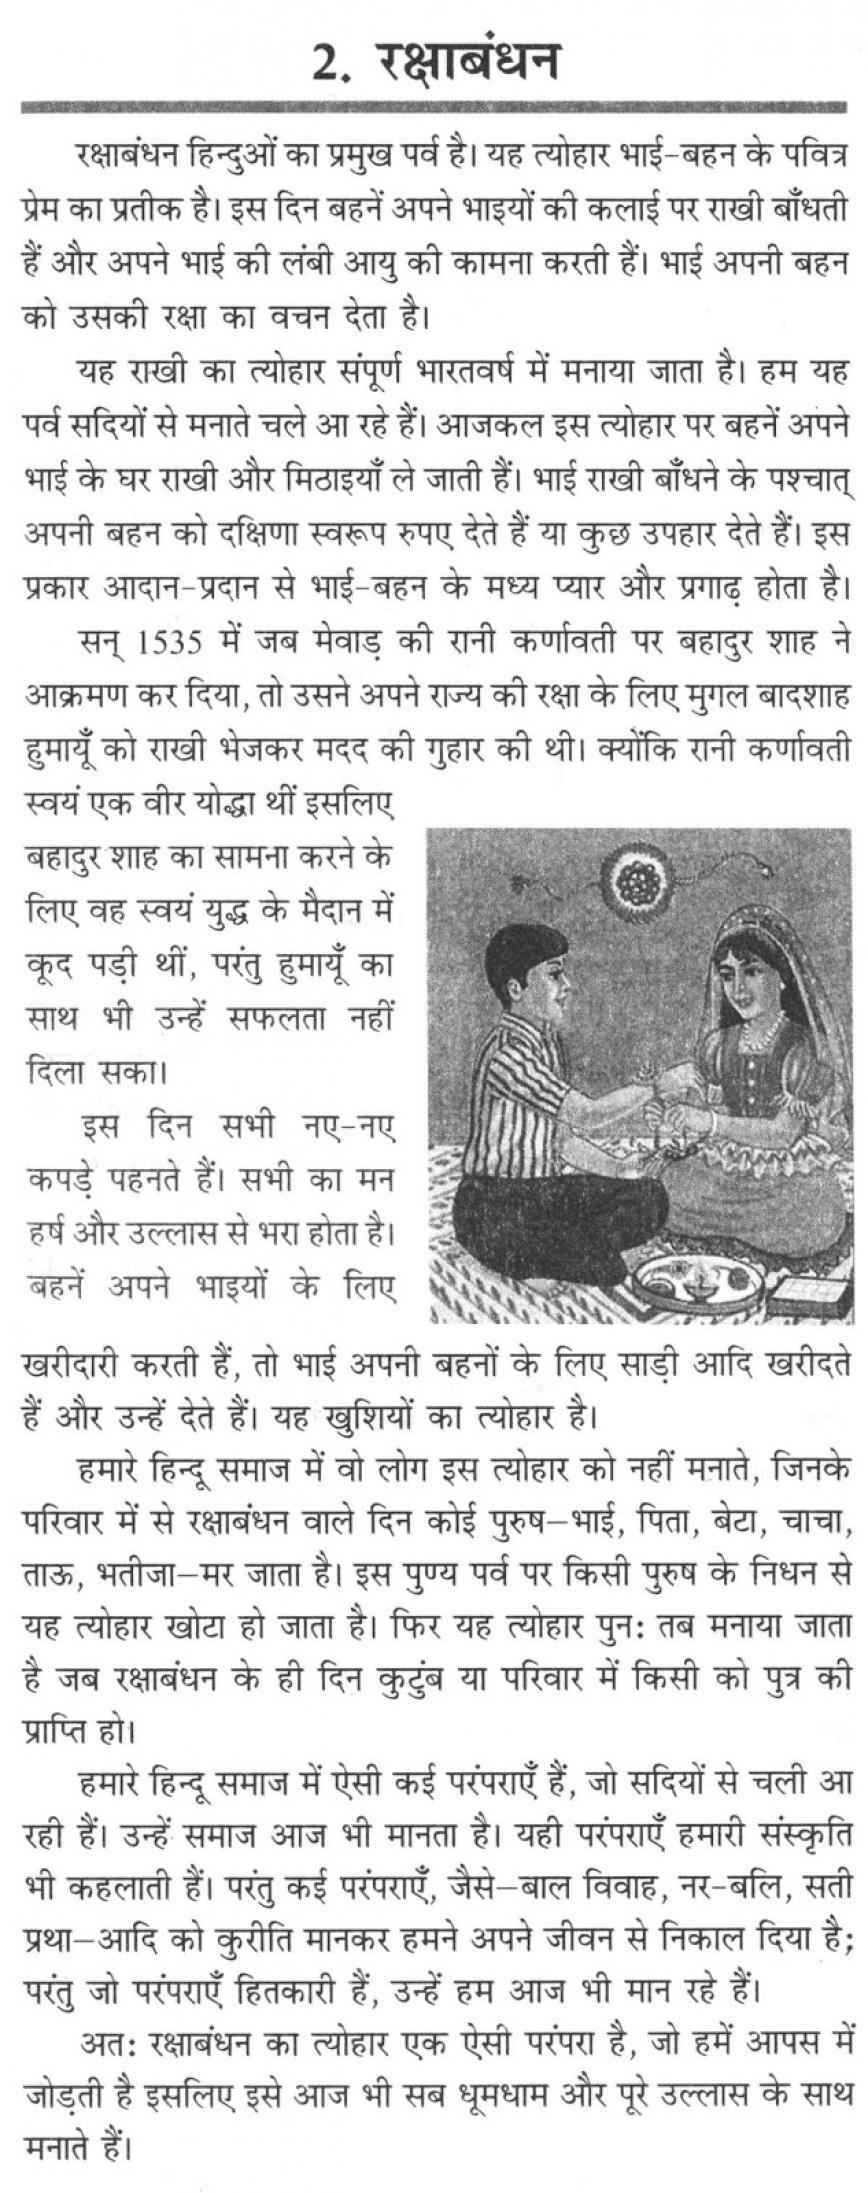 015 Raksha20bandhan20essay20in20hindi202016 Essay Example Good Habits In Exceptional Hindi Food Wikipedia 868